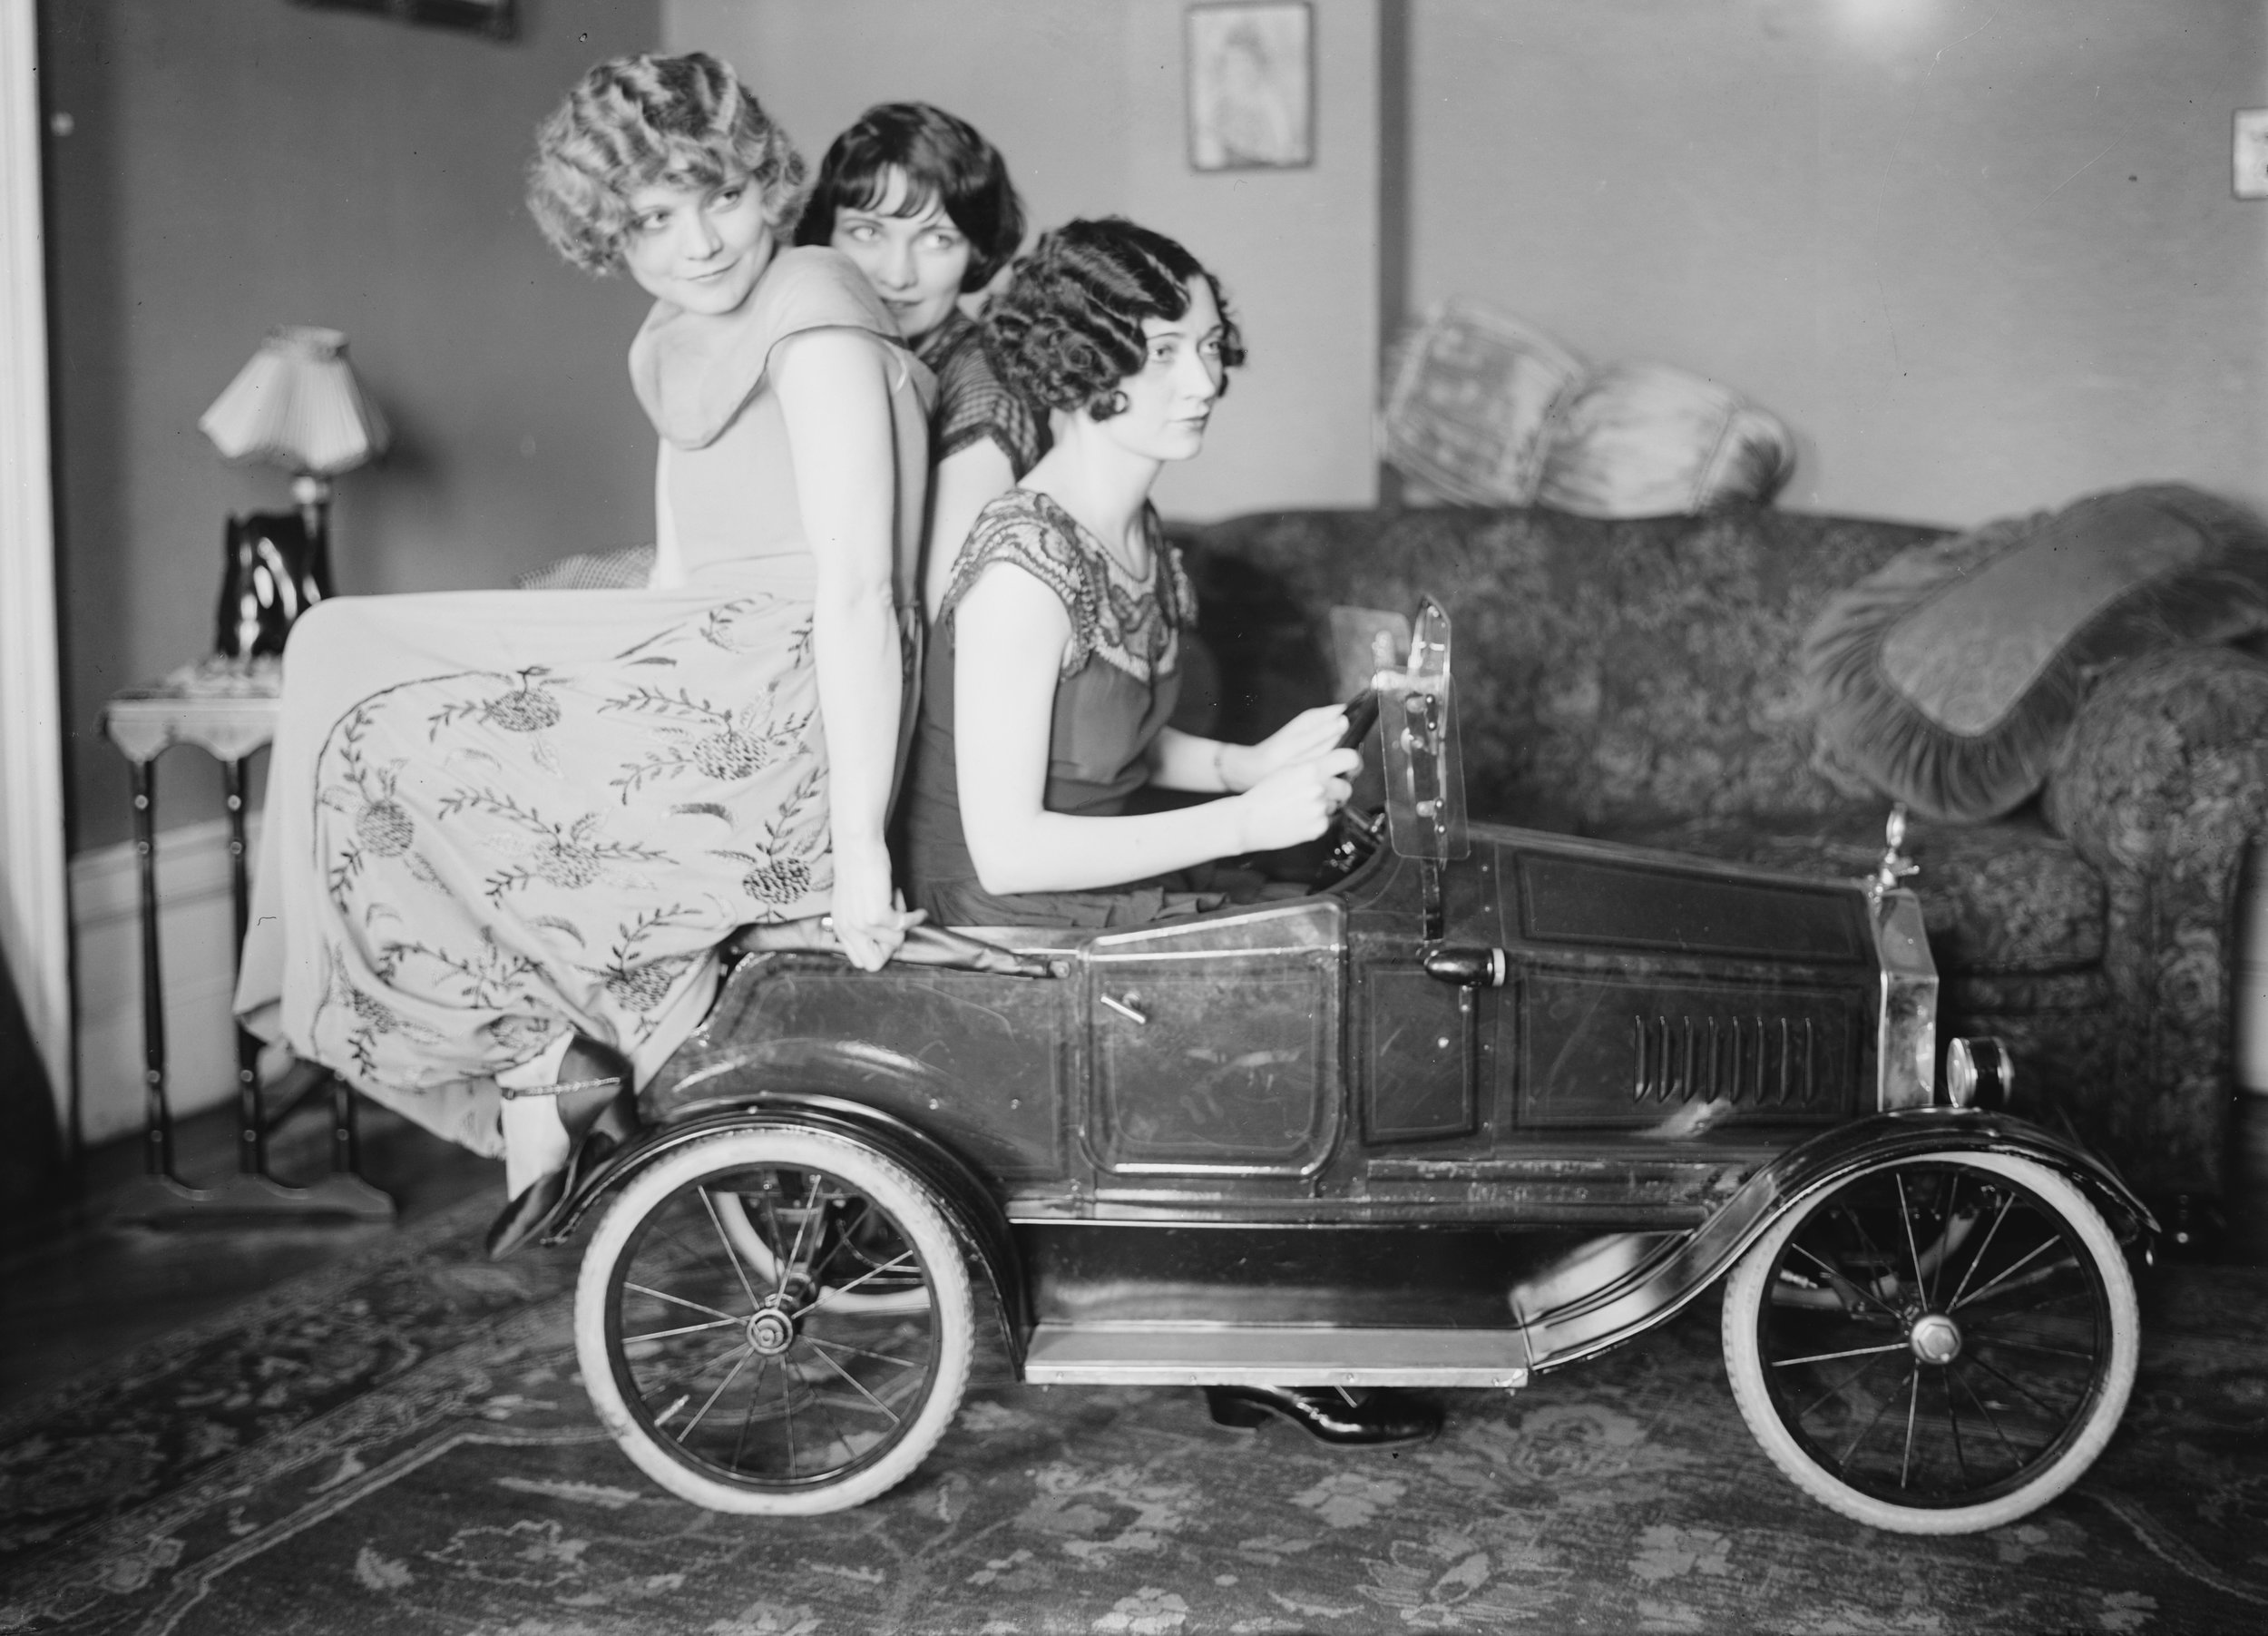 The Brox Sisters, posed with toy car. Left to right: Loryane, Bobbe, Patricia, 1920s (The George Grantham Bain Collection - Library of Congress archive)